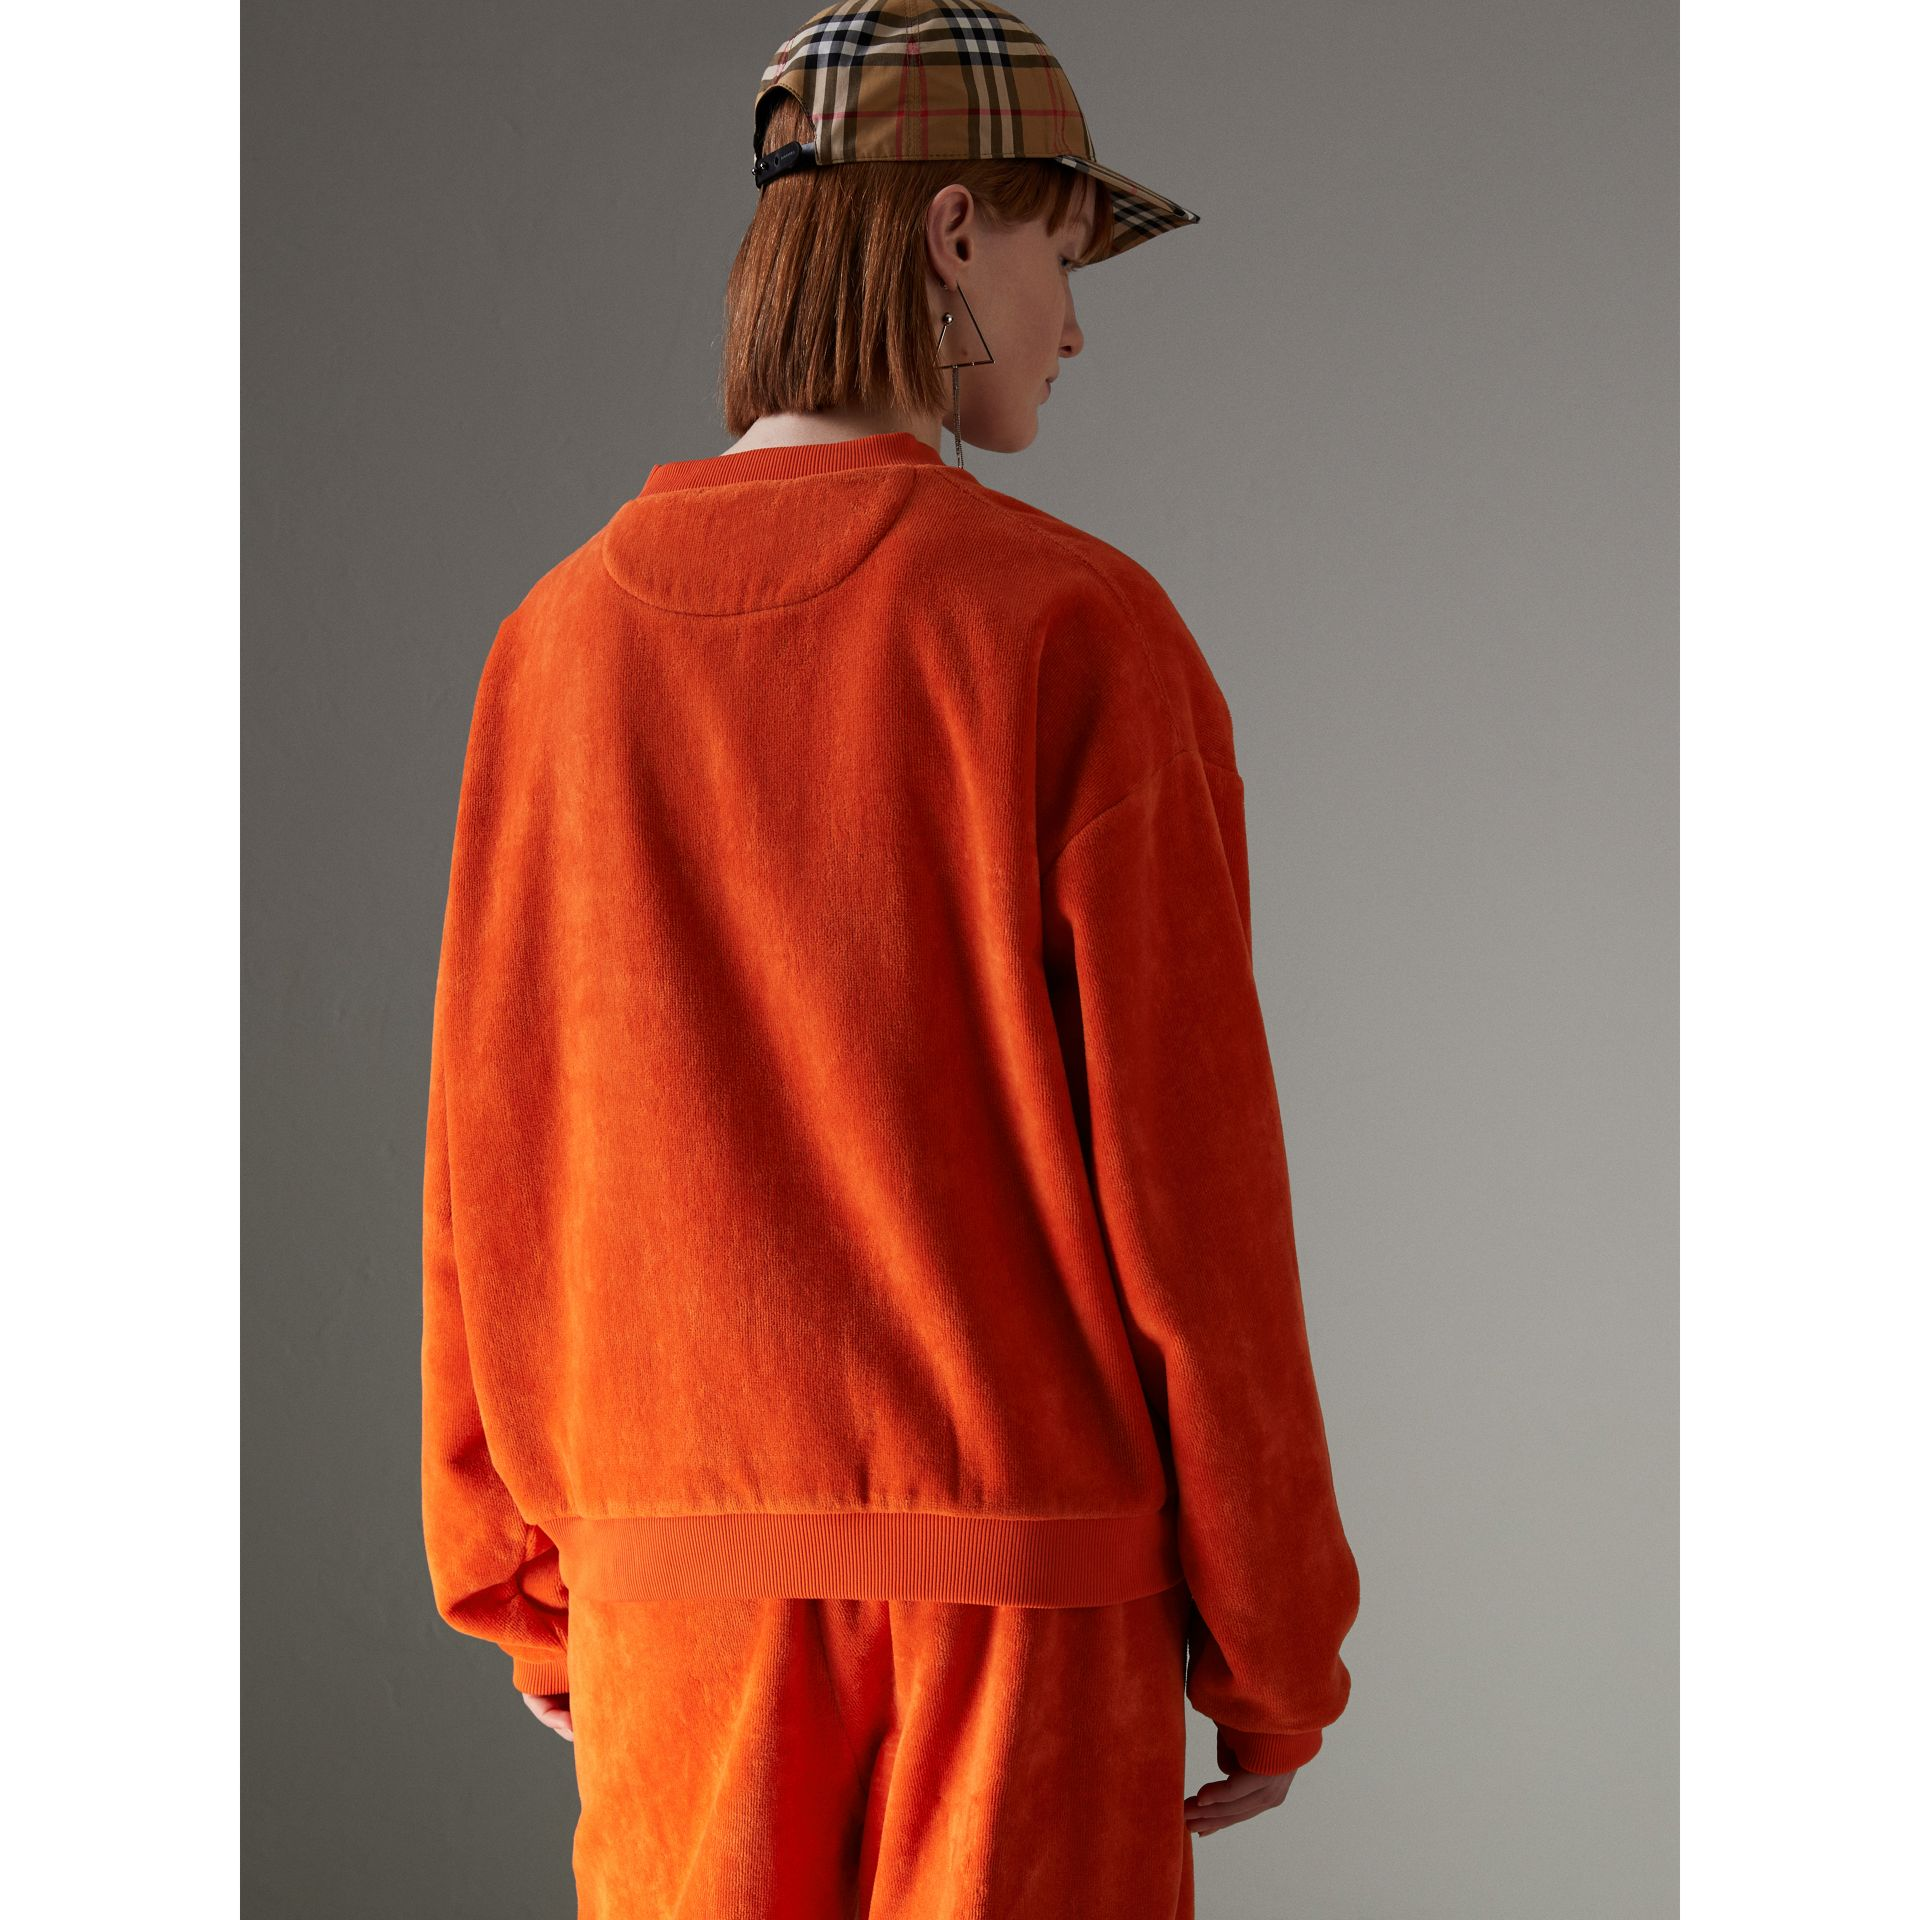 Archive Logo Towelling Sweatshirt in Tangerine - Women | Burberry Australia - gallery image 2